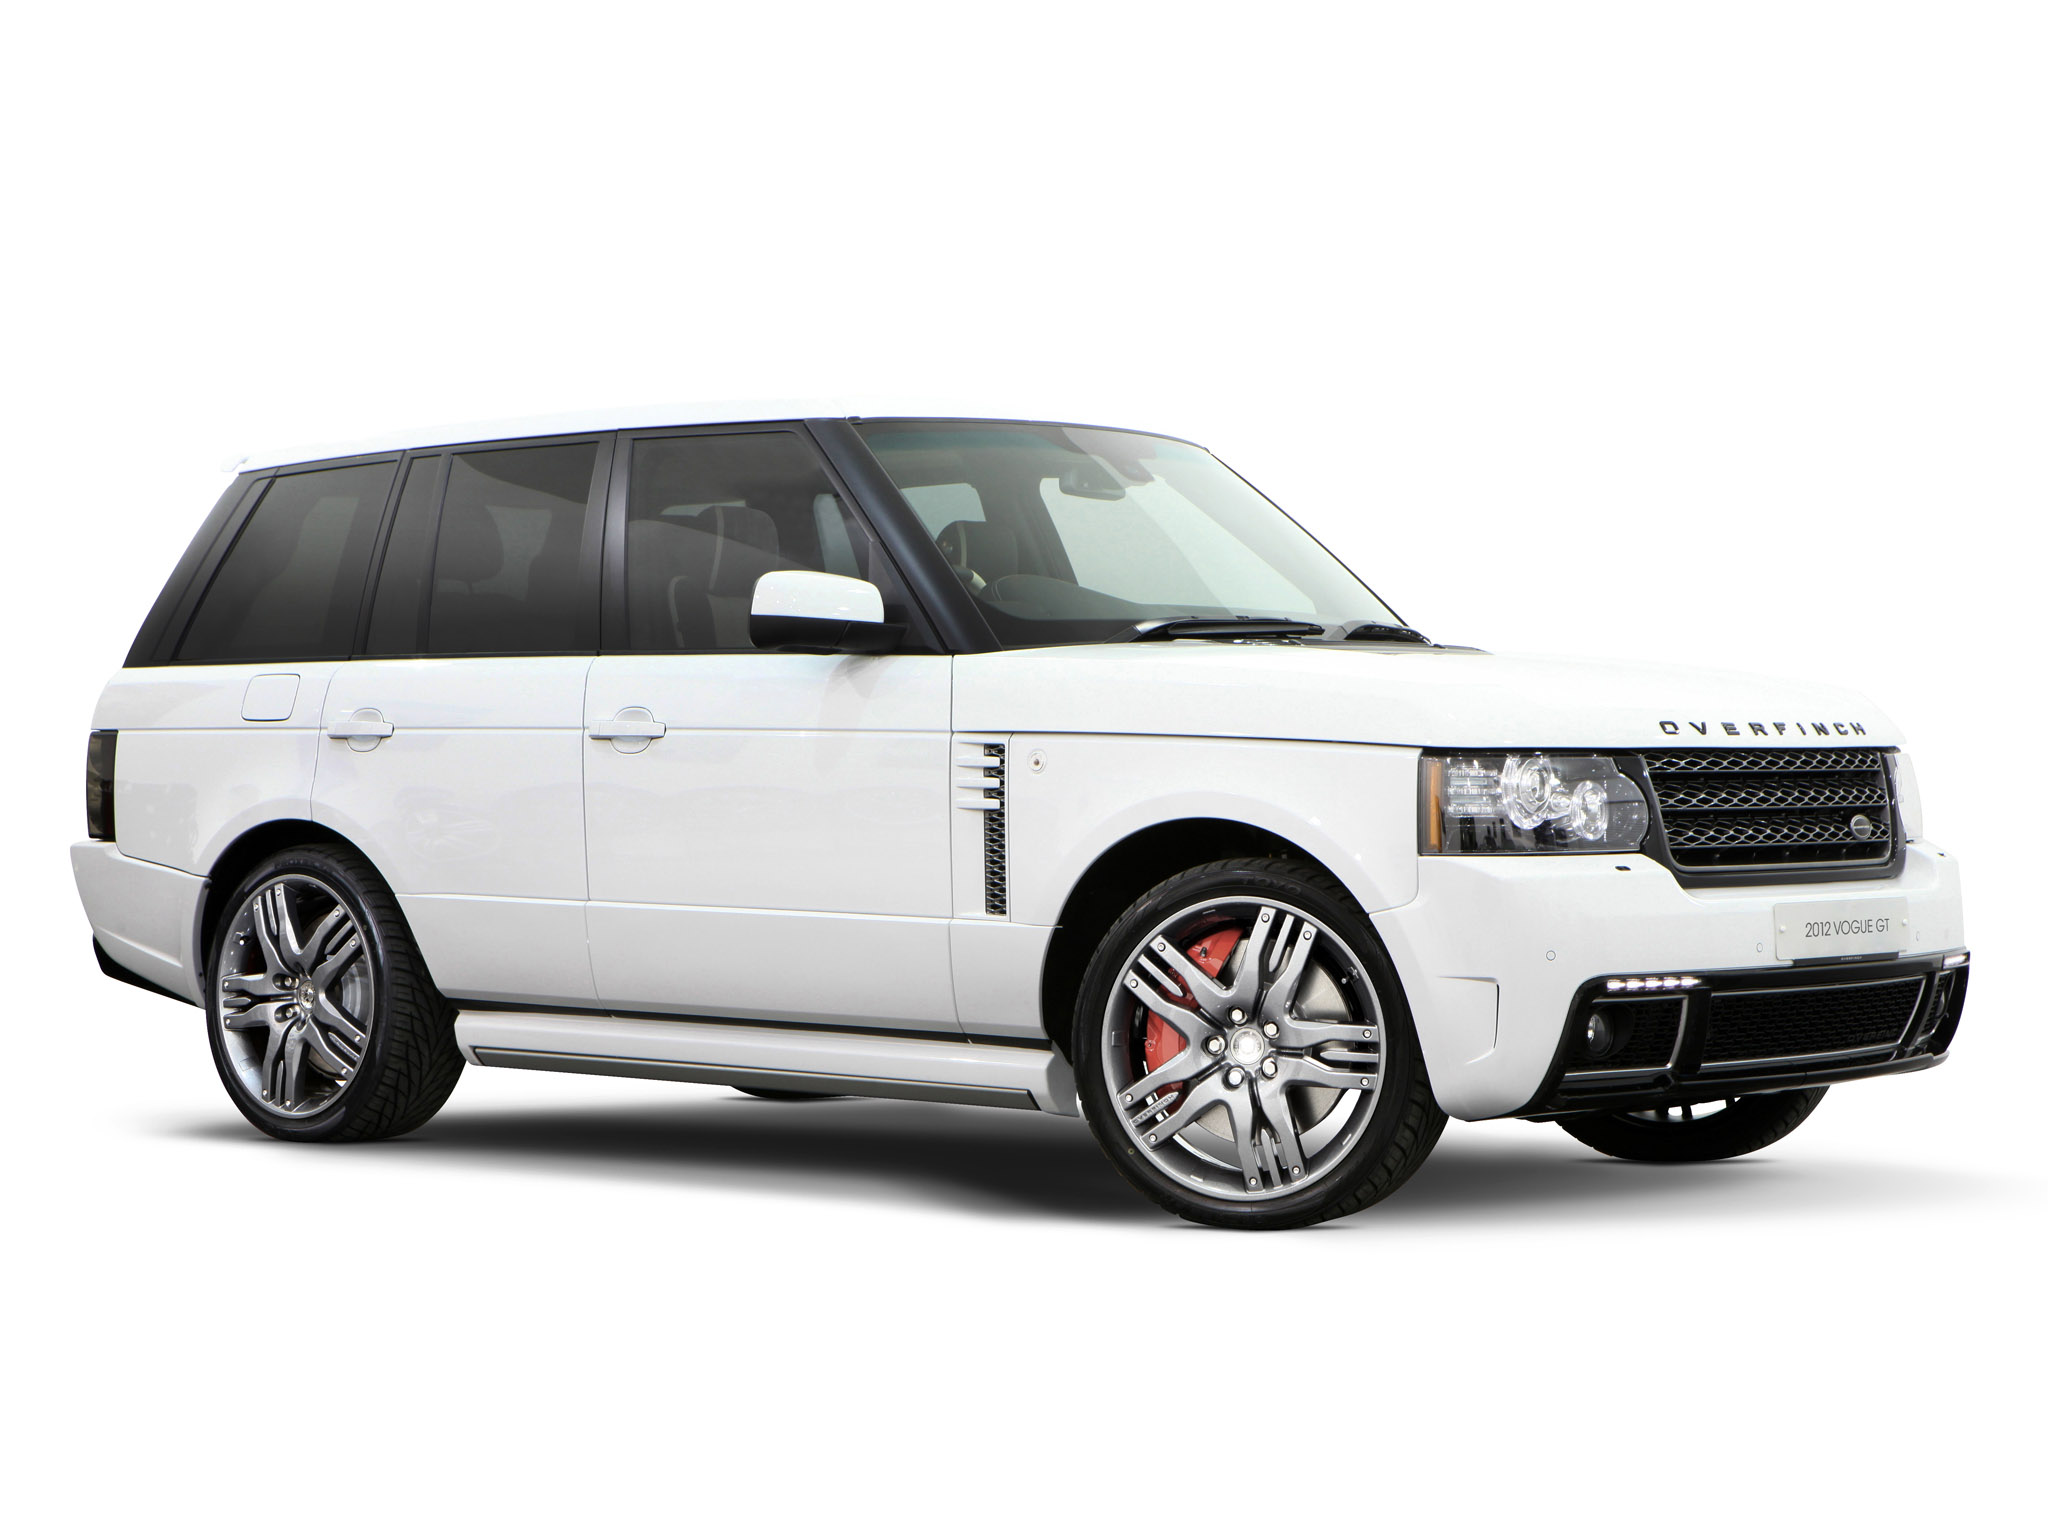 Land Rover Range Rover Vogue GT by Overfinch High Resolution Image Wallpapers Desktop Download